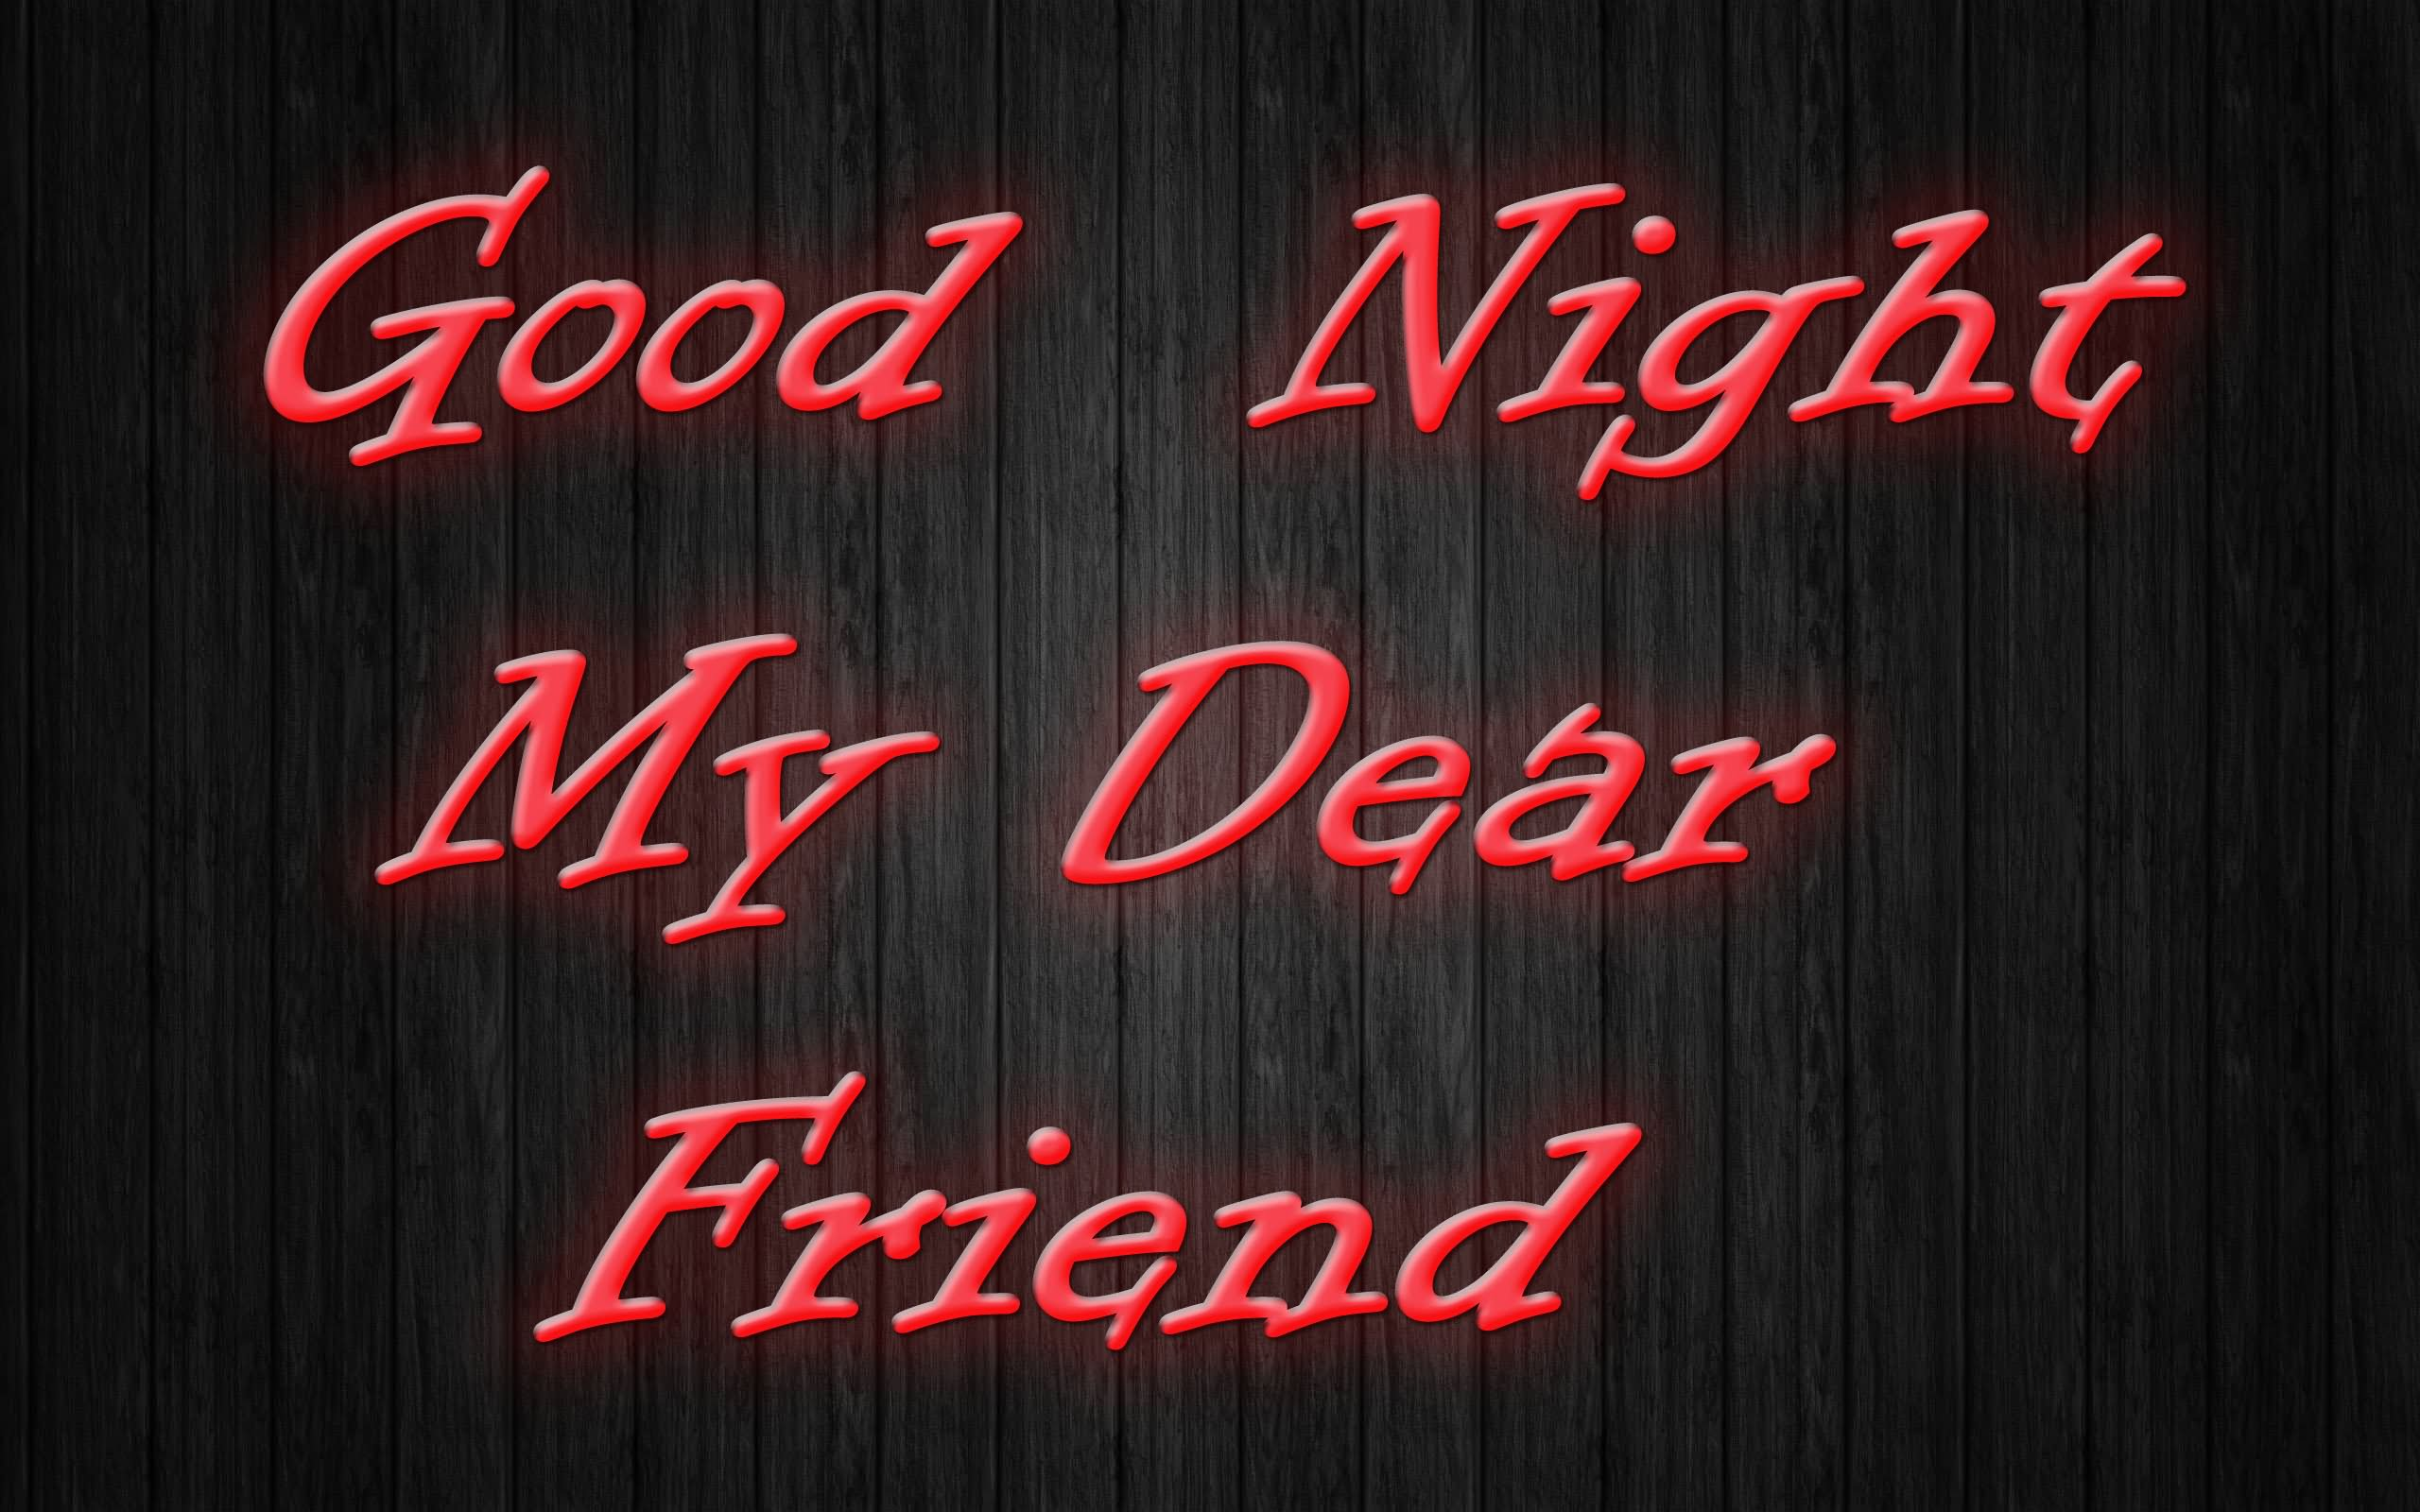 Night Good friends images pictures